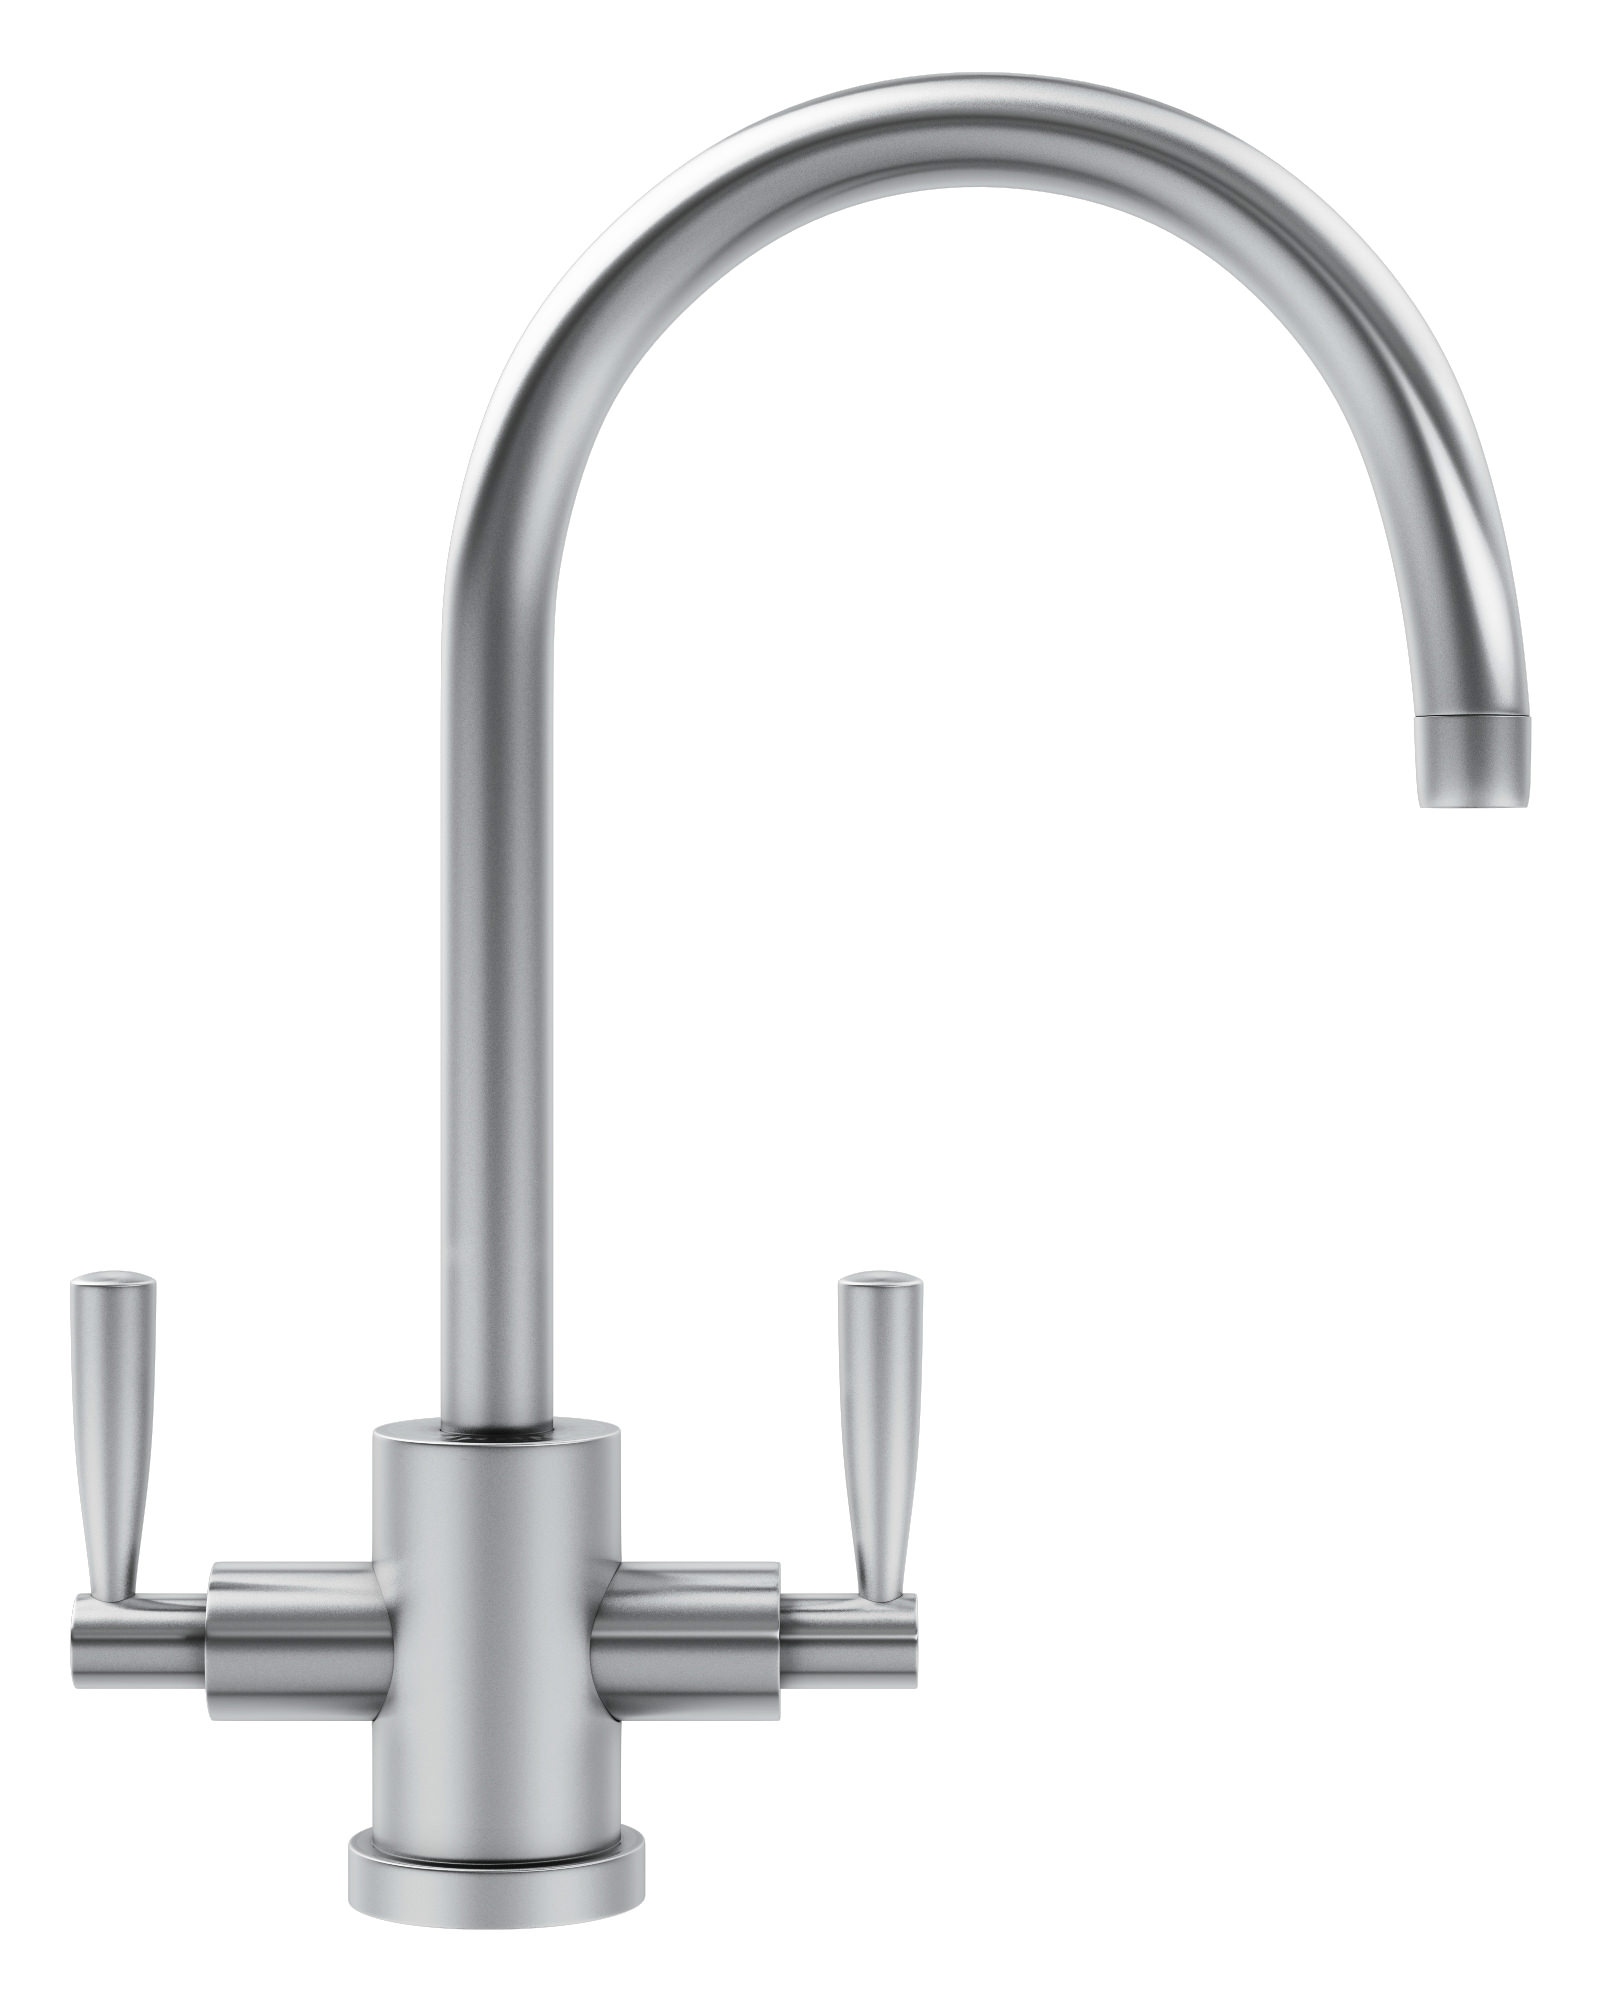 Franke Kitchen Mixer : ... kitchen mixer taps franke olympus kitchen sink mixer tap silksteel